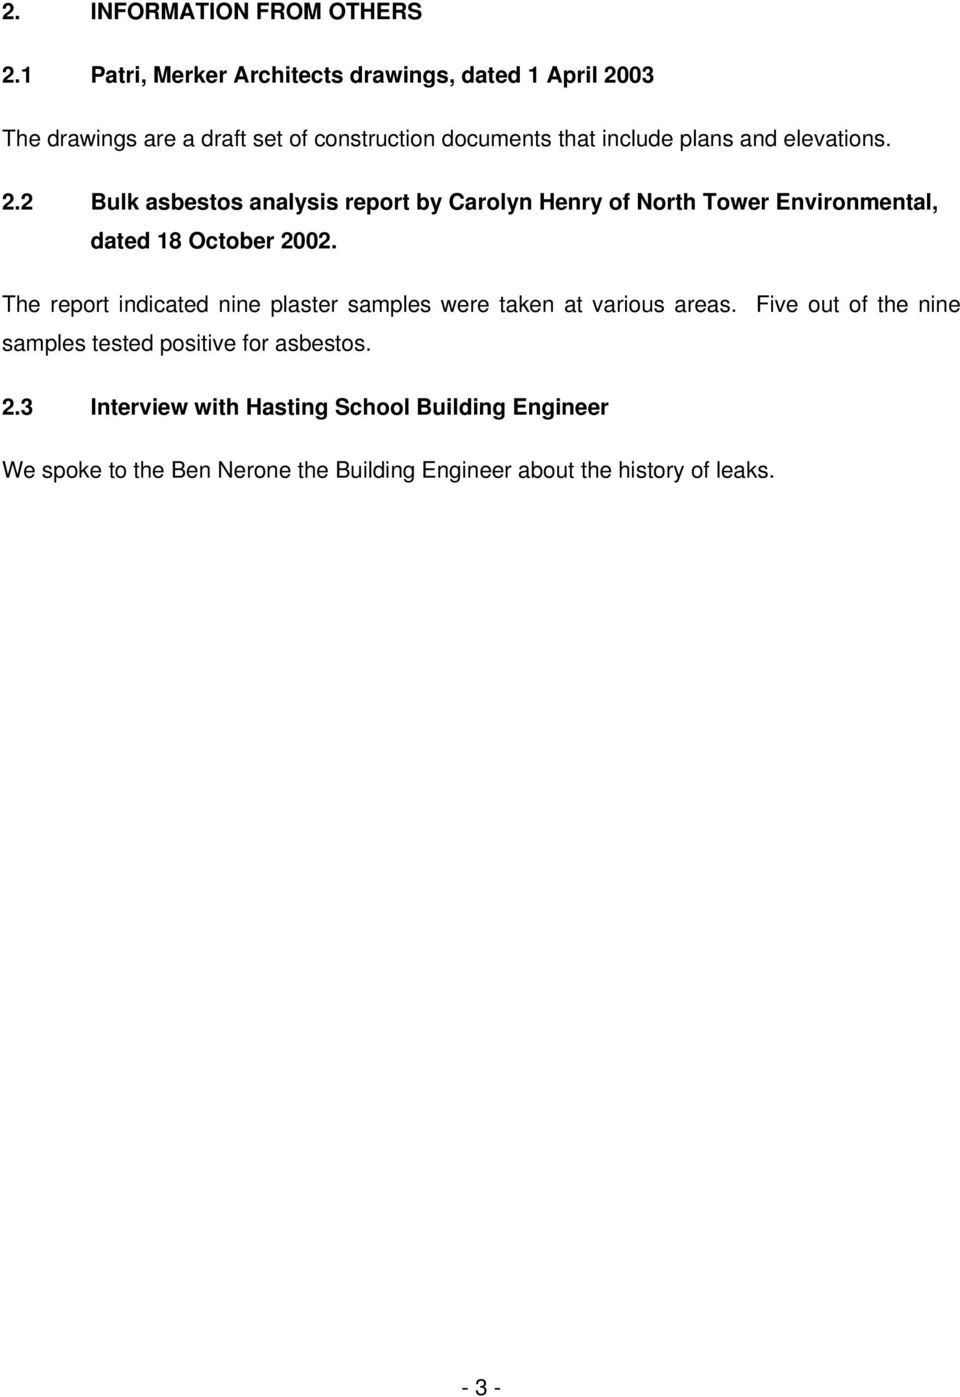 elevations. 2.2 Bulk asbestos analysis report by Carolyn Henry of North Tower Environmental, dated 18 October 2002.